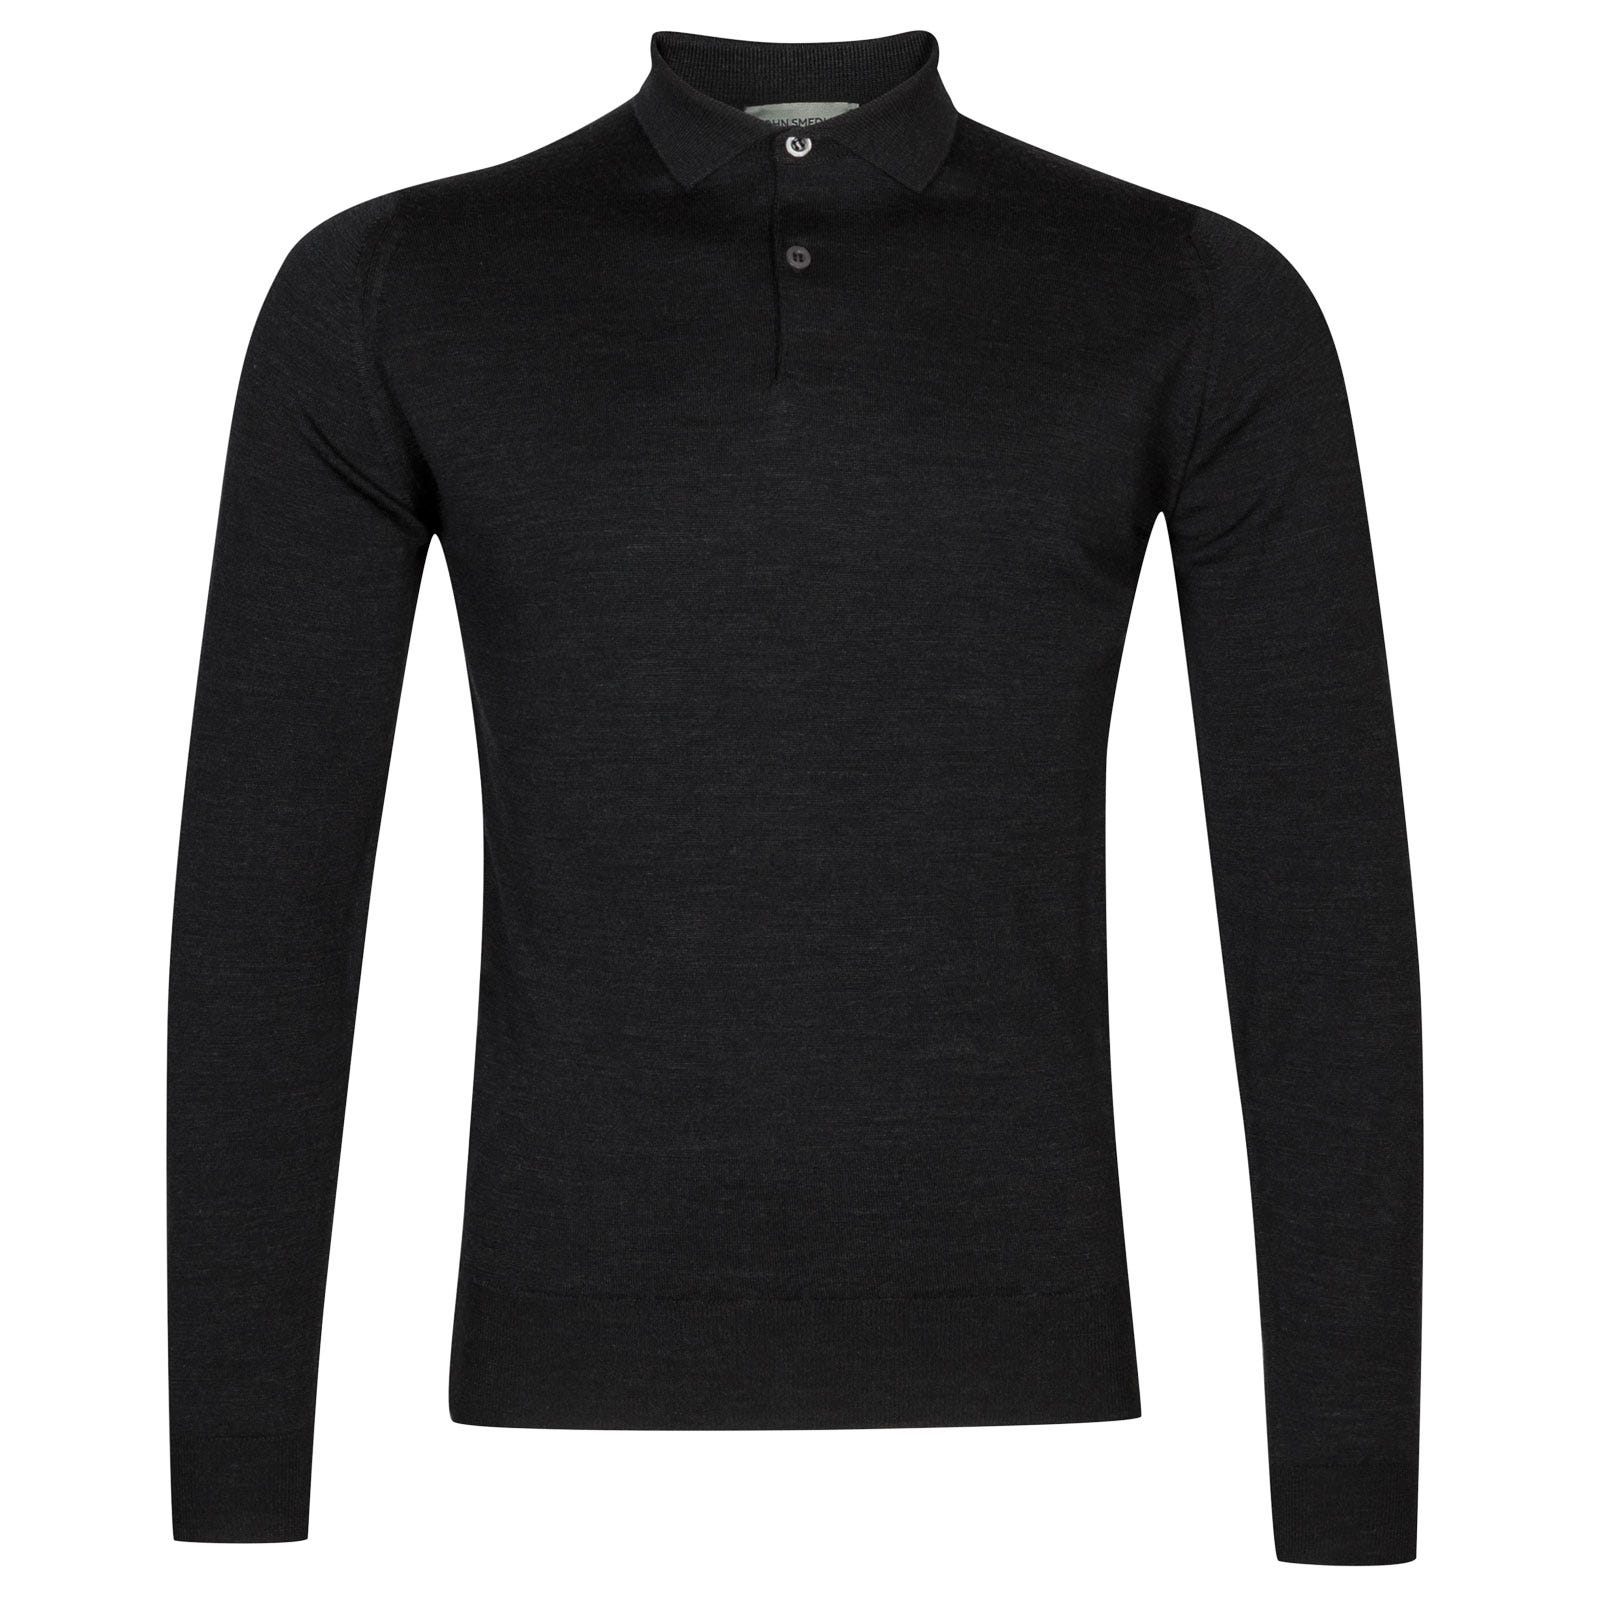 John Smedley garda Merino Wool Shirt in Hepburn Smoke-XL